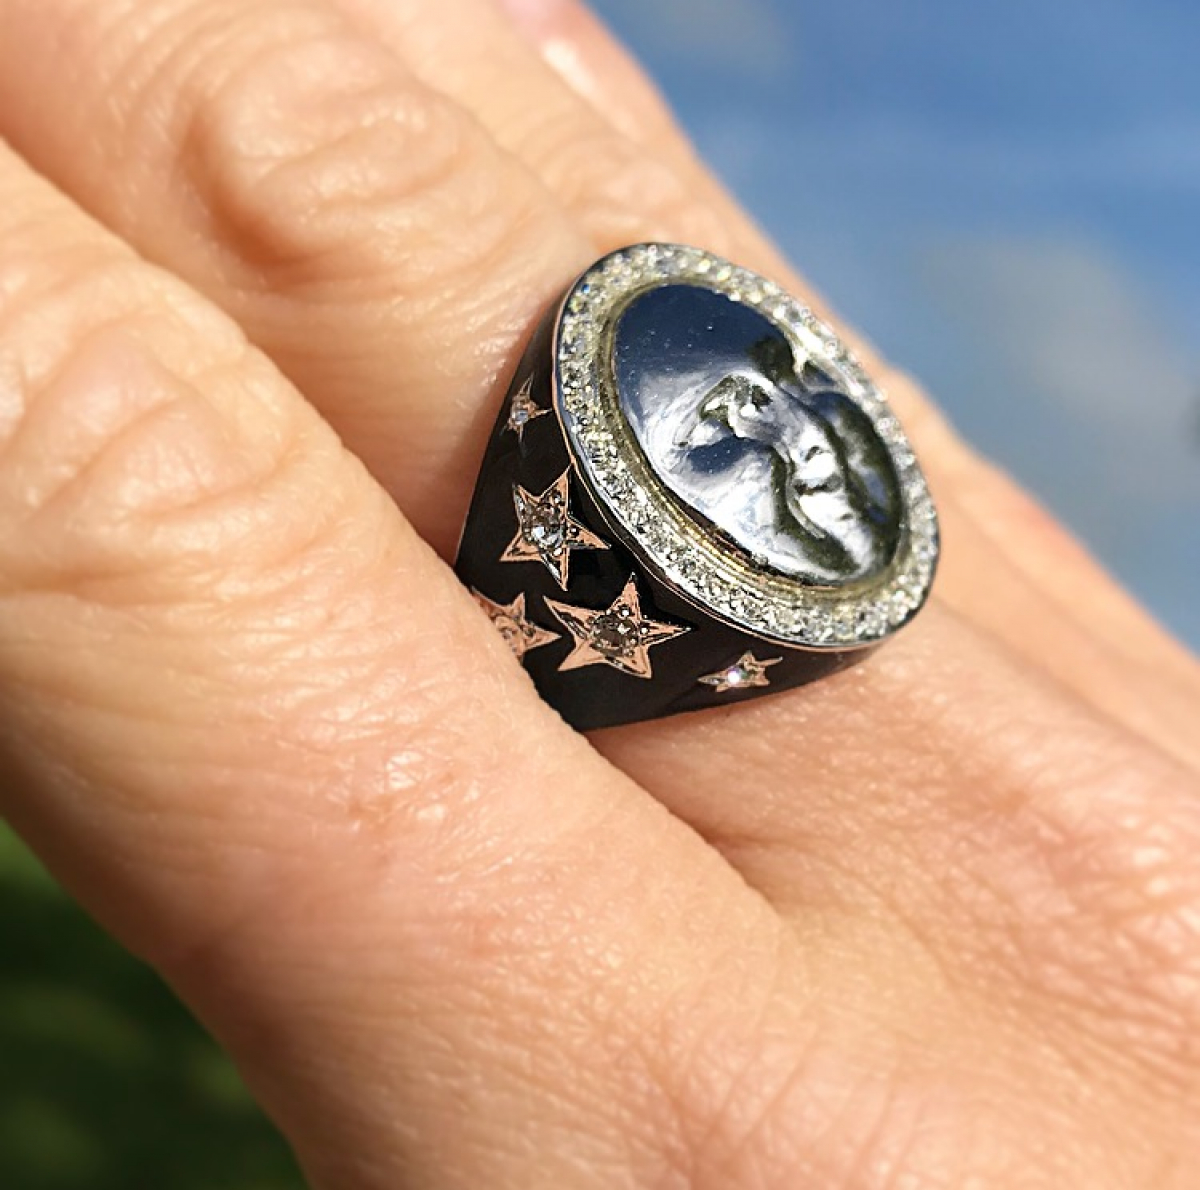 Archive Moon & Star Statement Ring - Small Size Only